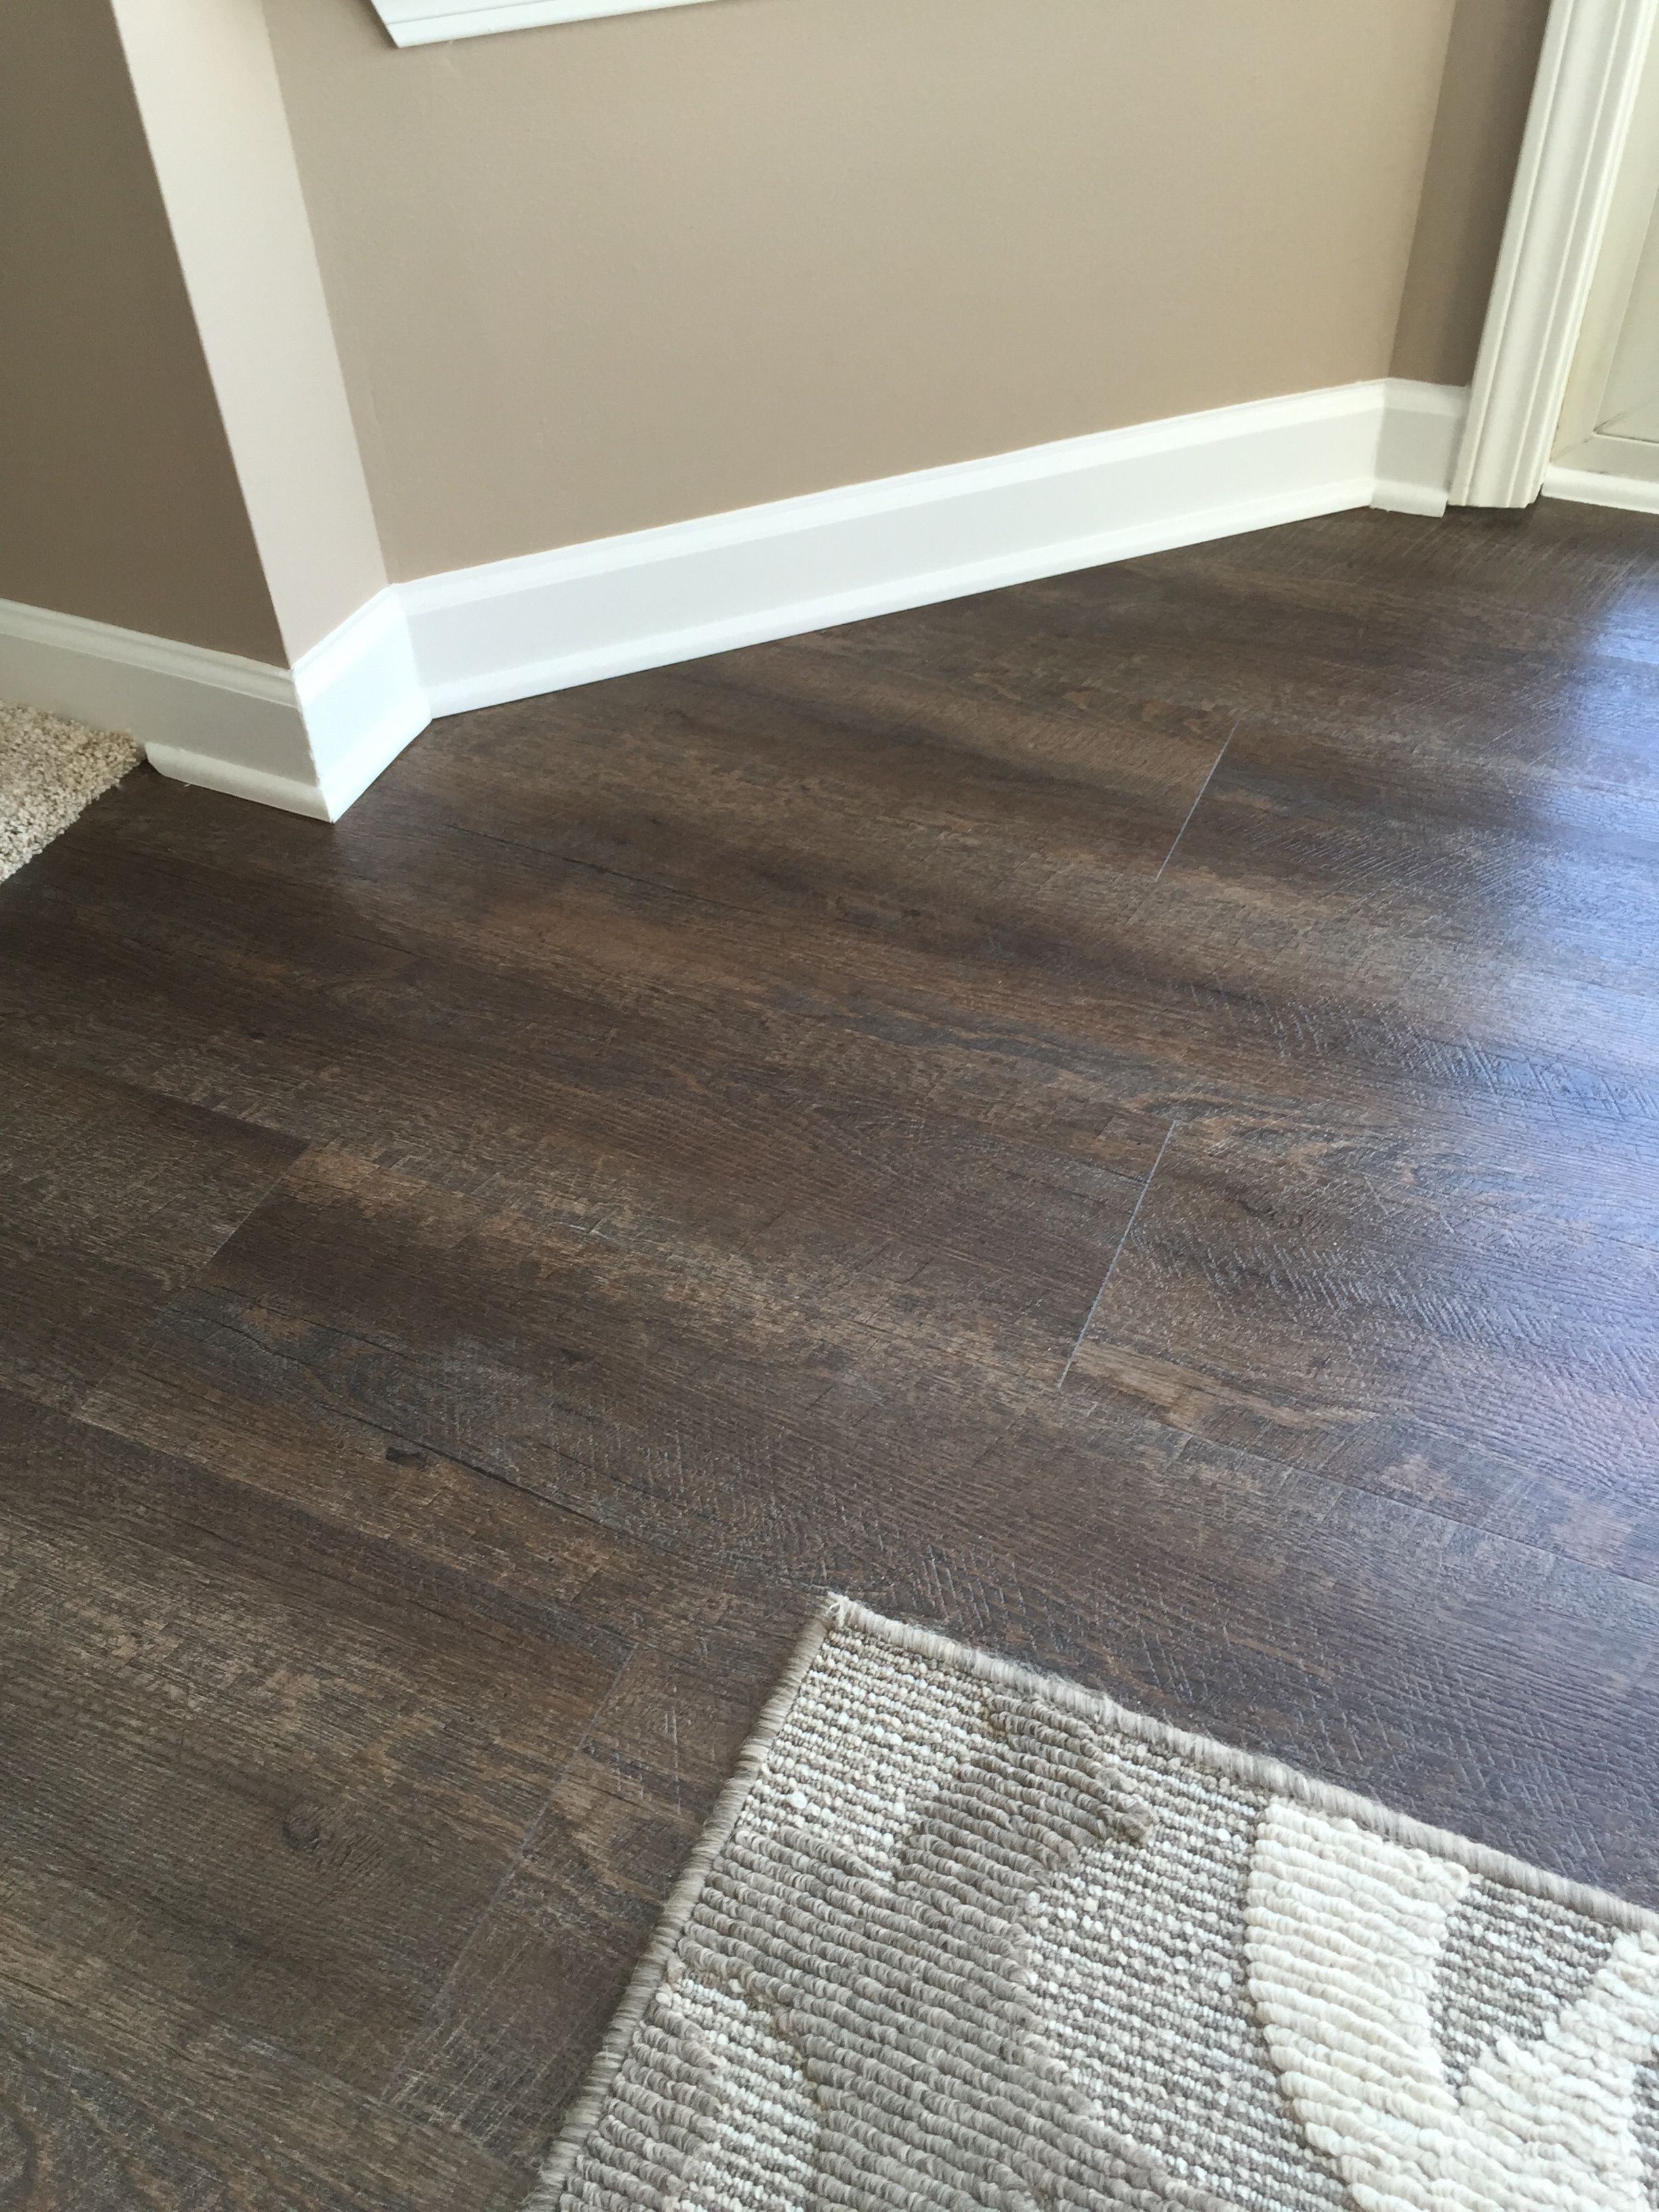 home depot kitchen flooring This is the flooring we are doing Home Depot trafficMaster Allure Sawcut Dakota Vinyl Planks Waterproof